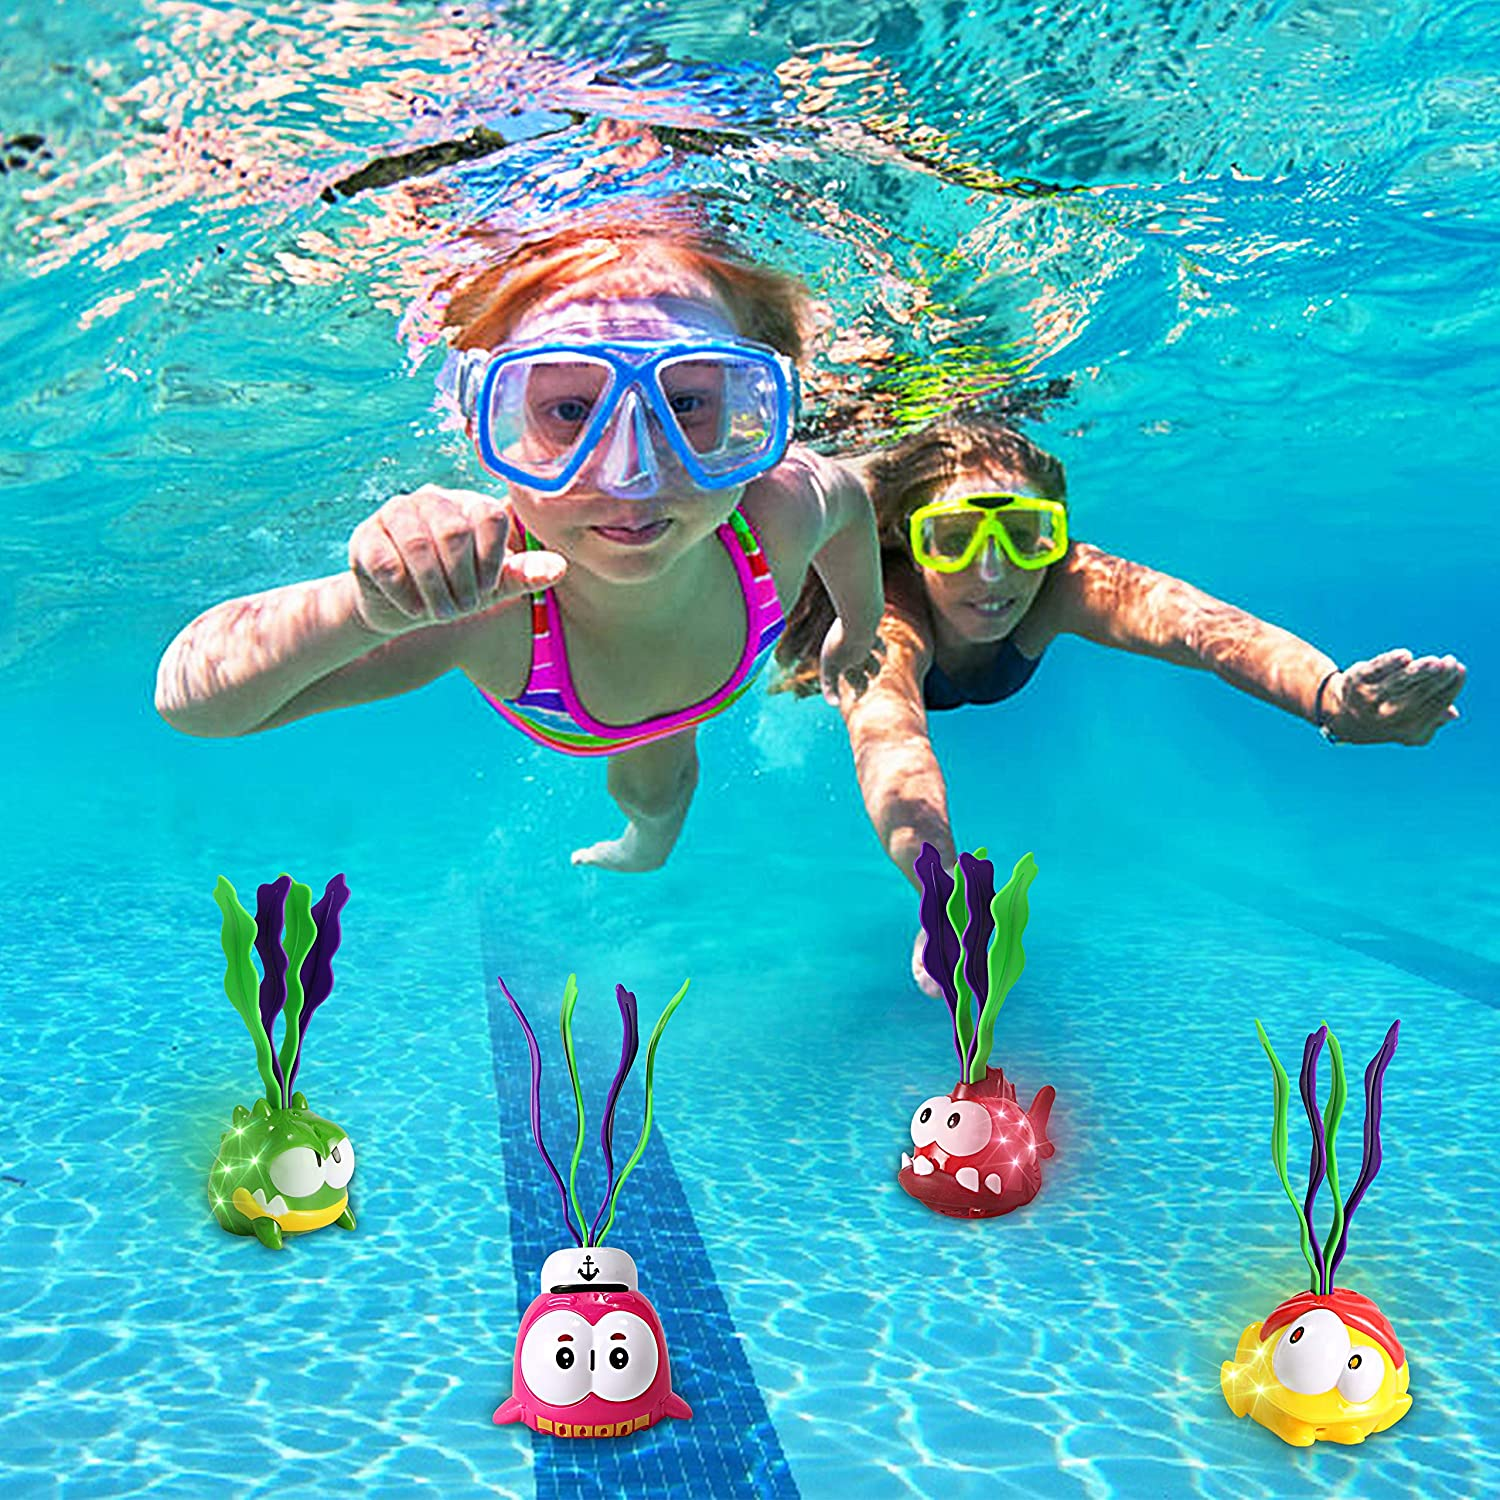 Light-up Diving Pool Toys Set, 6 Packs